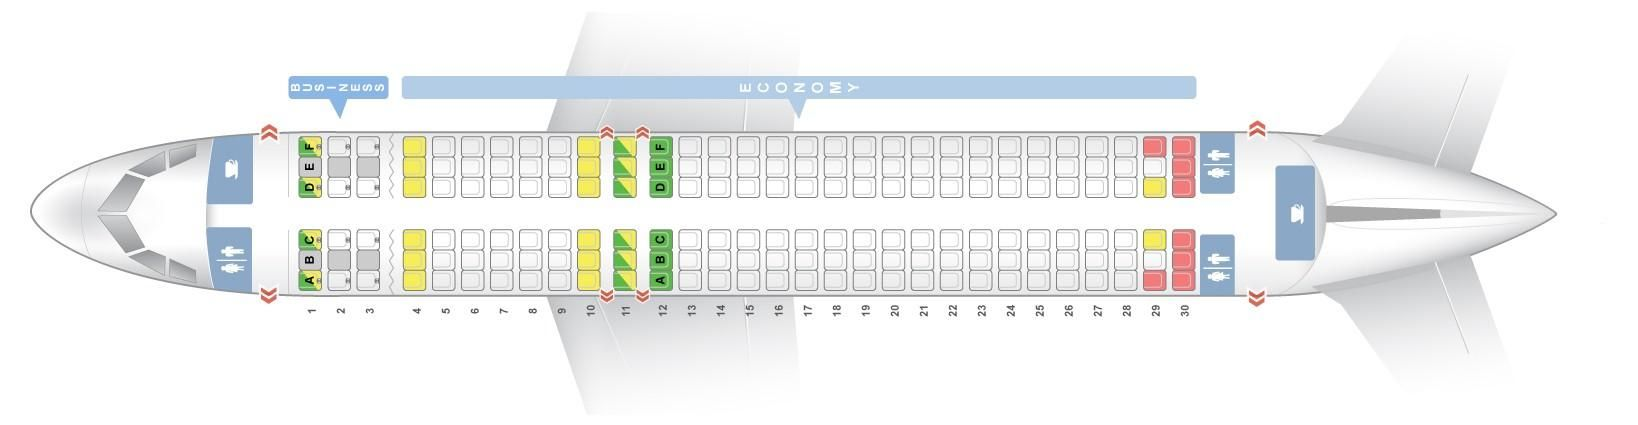 Seat Map And Seating Chart Airbus A320 200 V2 Brussels Airlines Airbus Fleet Vueling Airlines